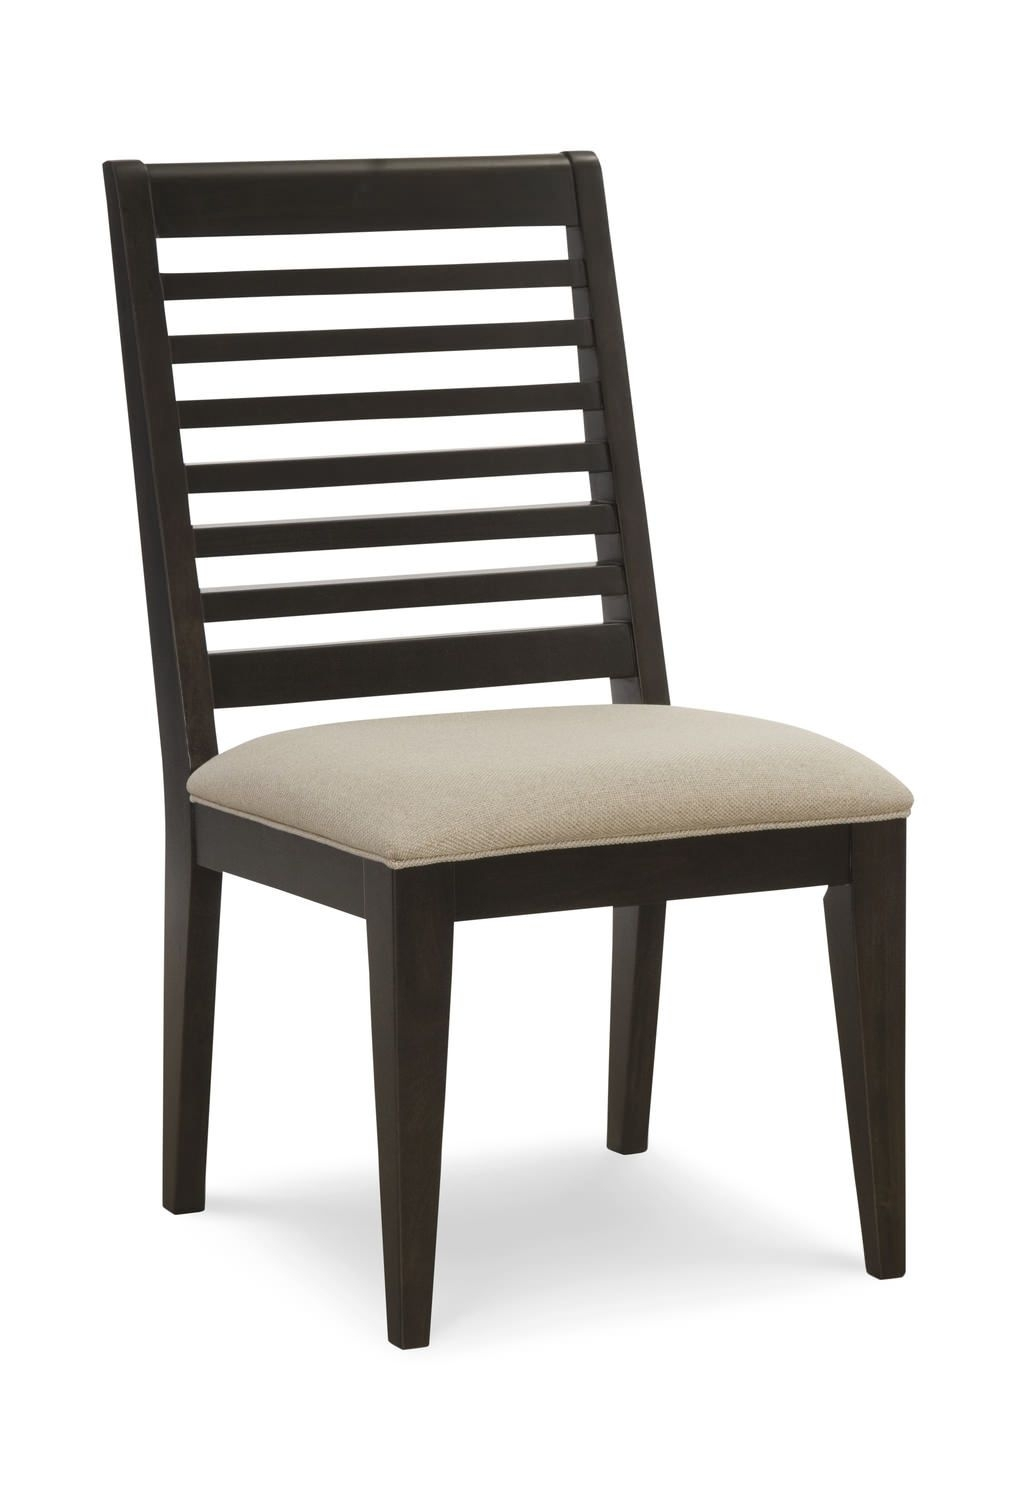 Pinterest Intended For Most Recent Candice Ii Slat Back Side Chairs (#19 of 20)